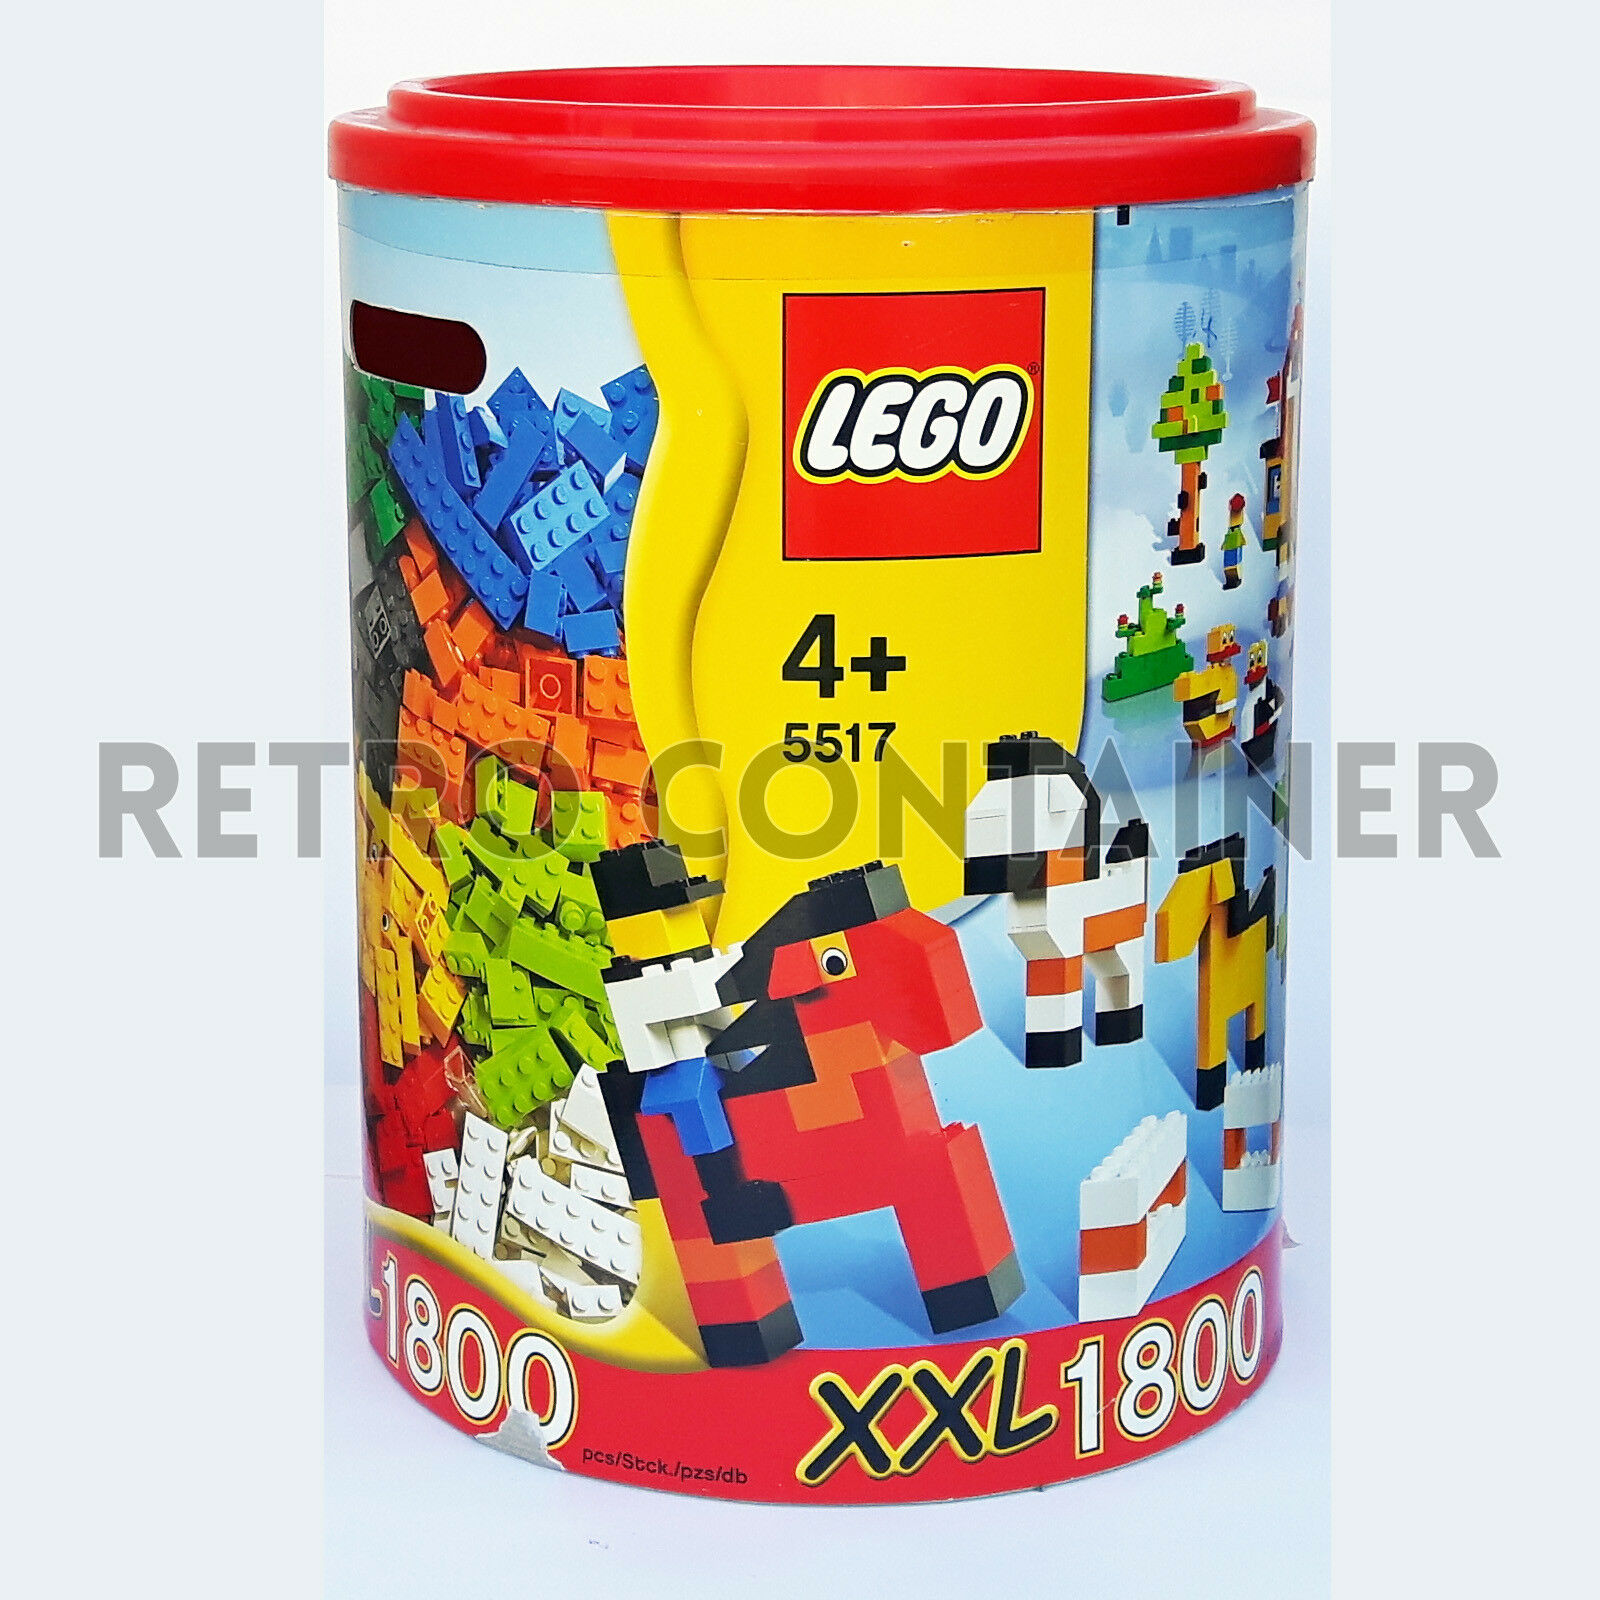 LEGO Set 100% Completo 5517 - XXL 1800 Pieces Canister 2006 - Ultra Rare Limited